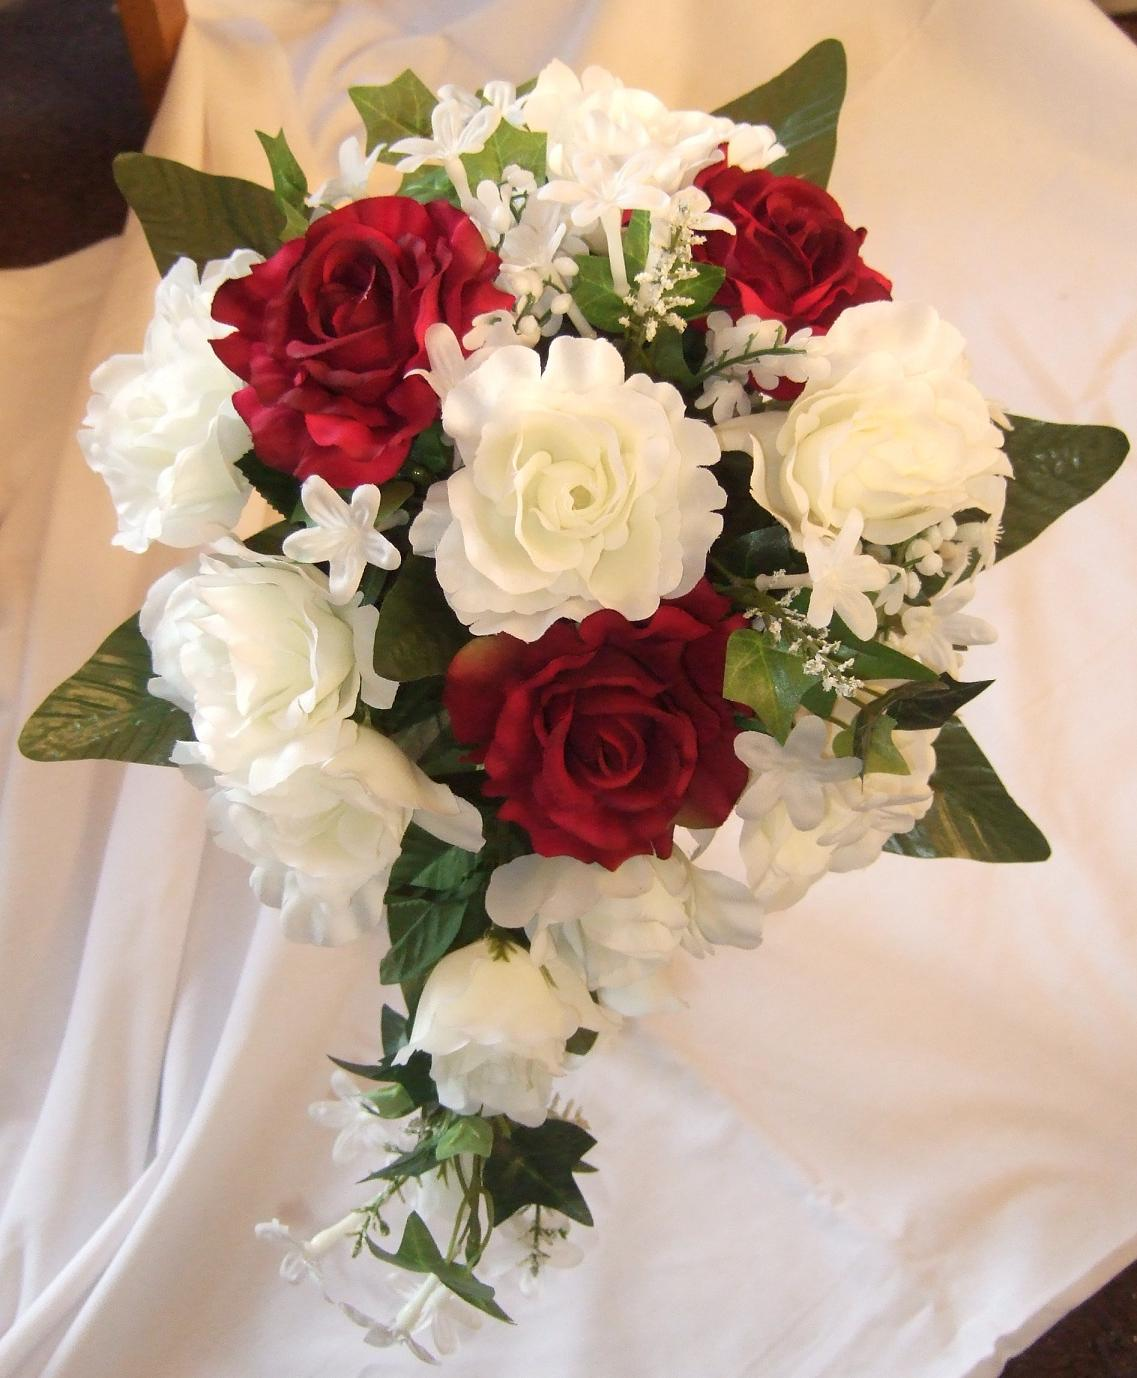 Ideas For Wedding Flower Arrangements: About Marriage: Marriage Flower Bouquet 2013